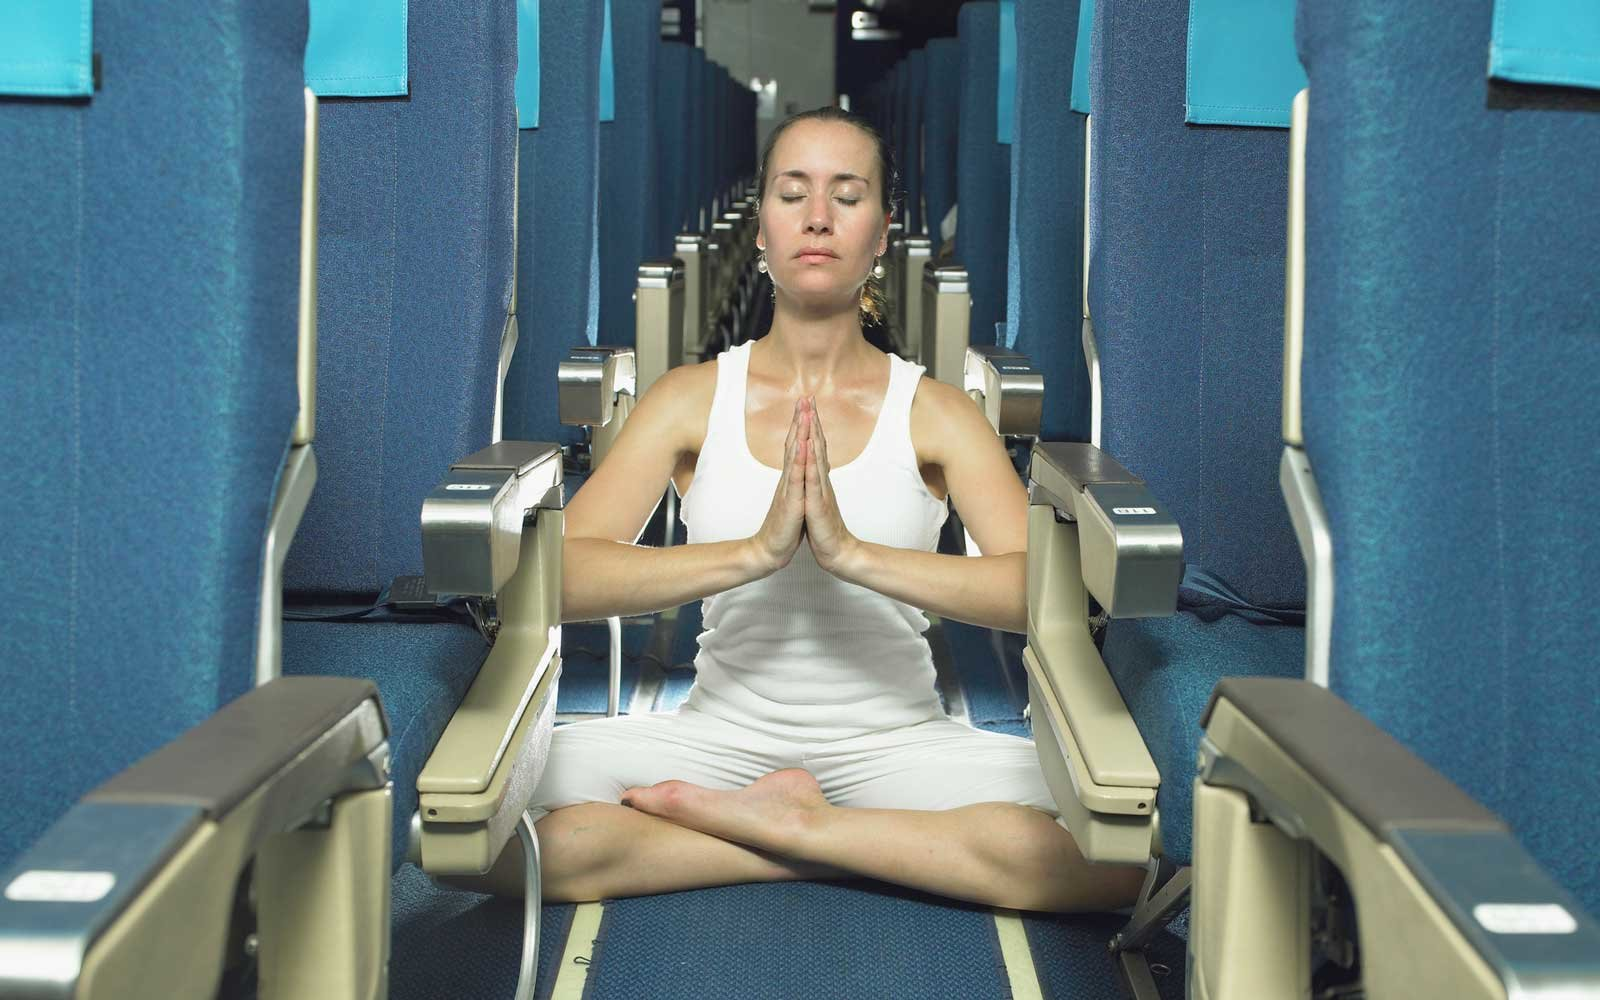 Yoga pose on airplane